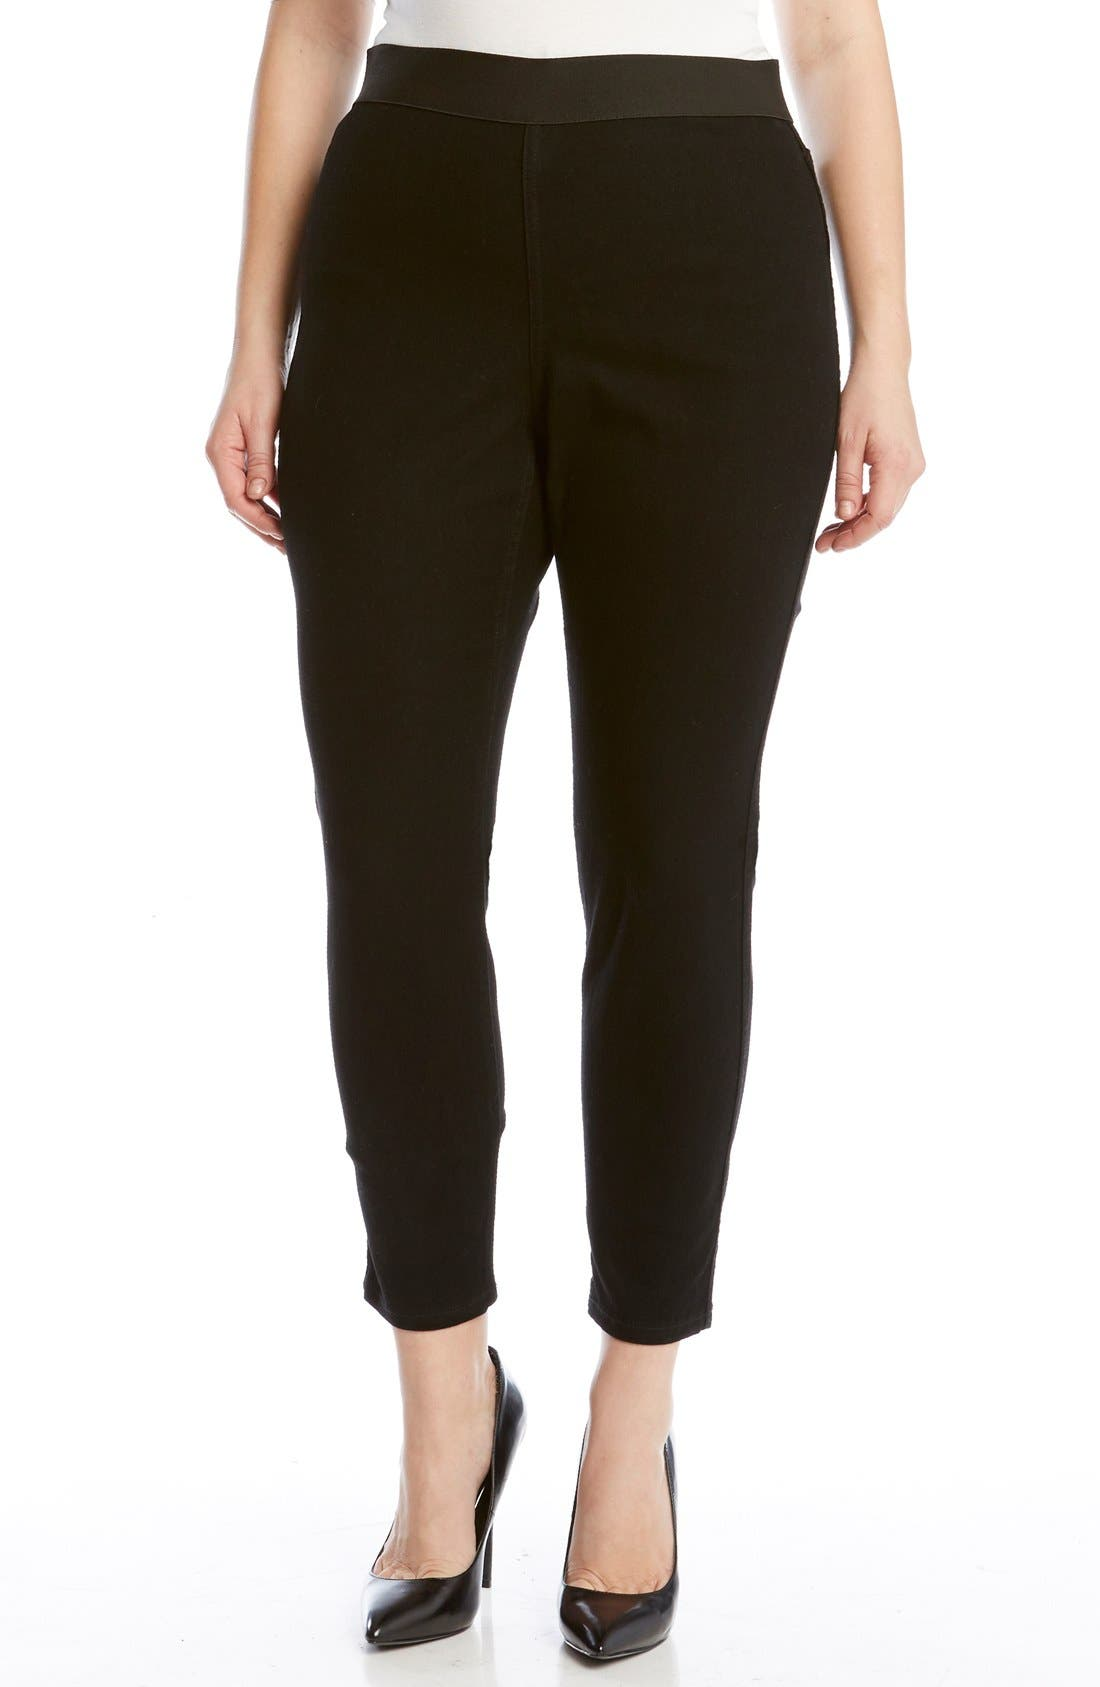 KAREN KANE Denim Leggings, Main, color, DARK BLACK